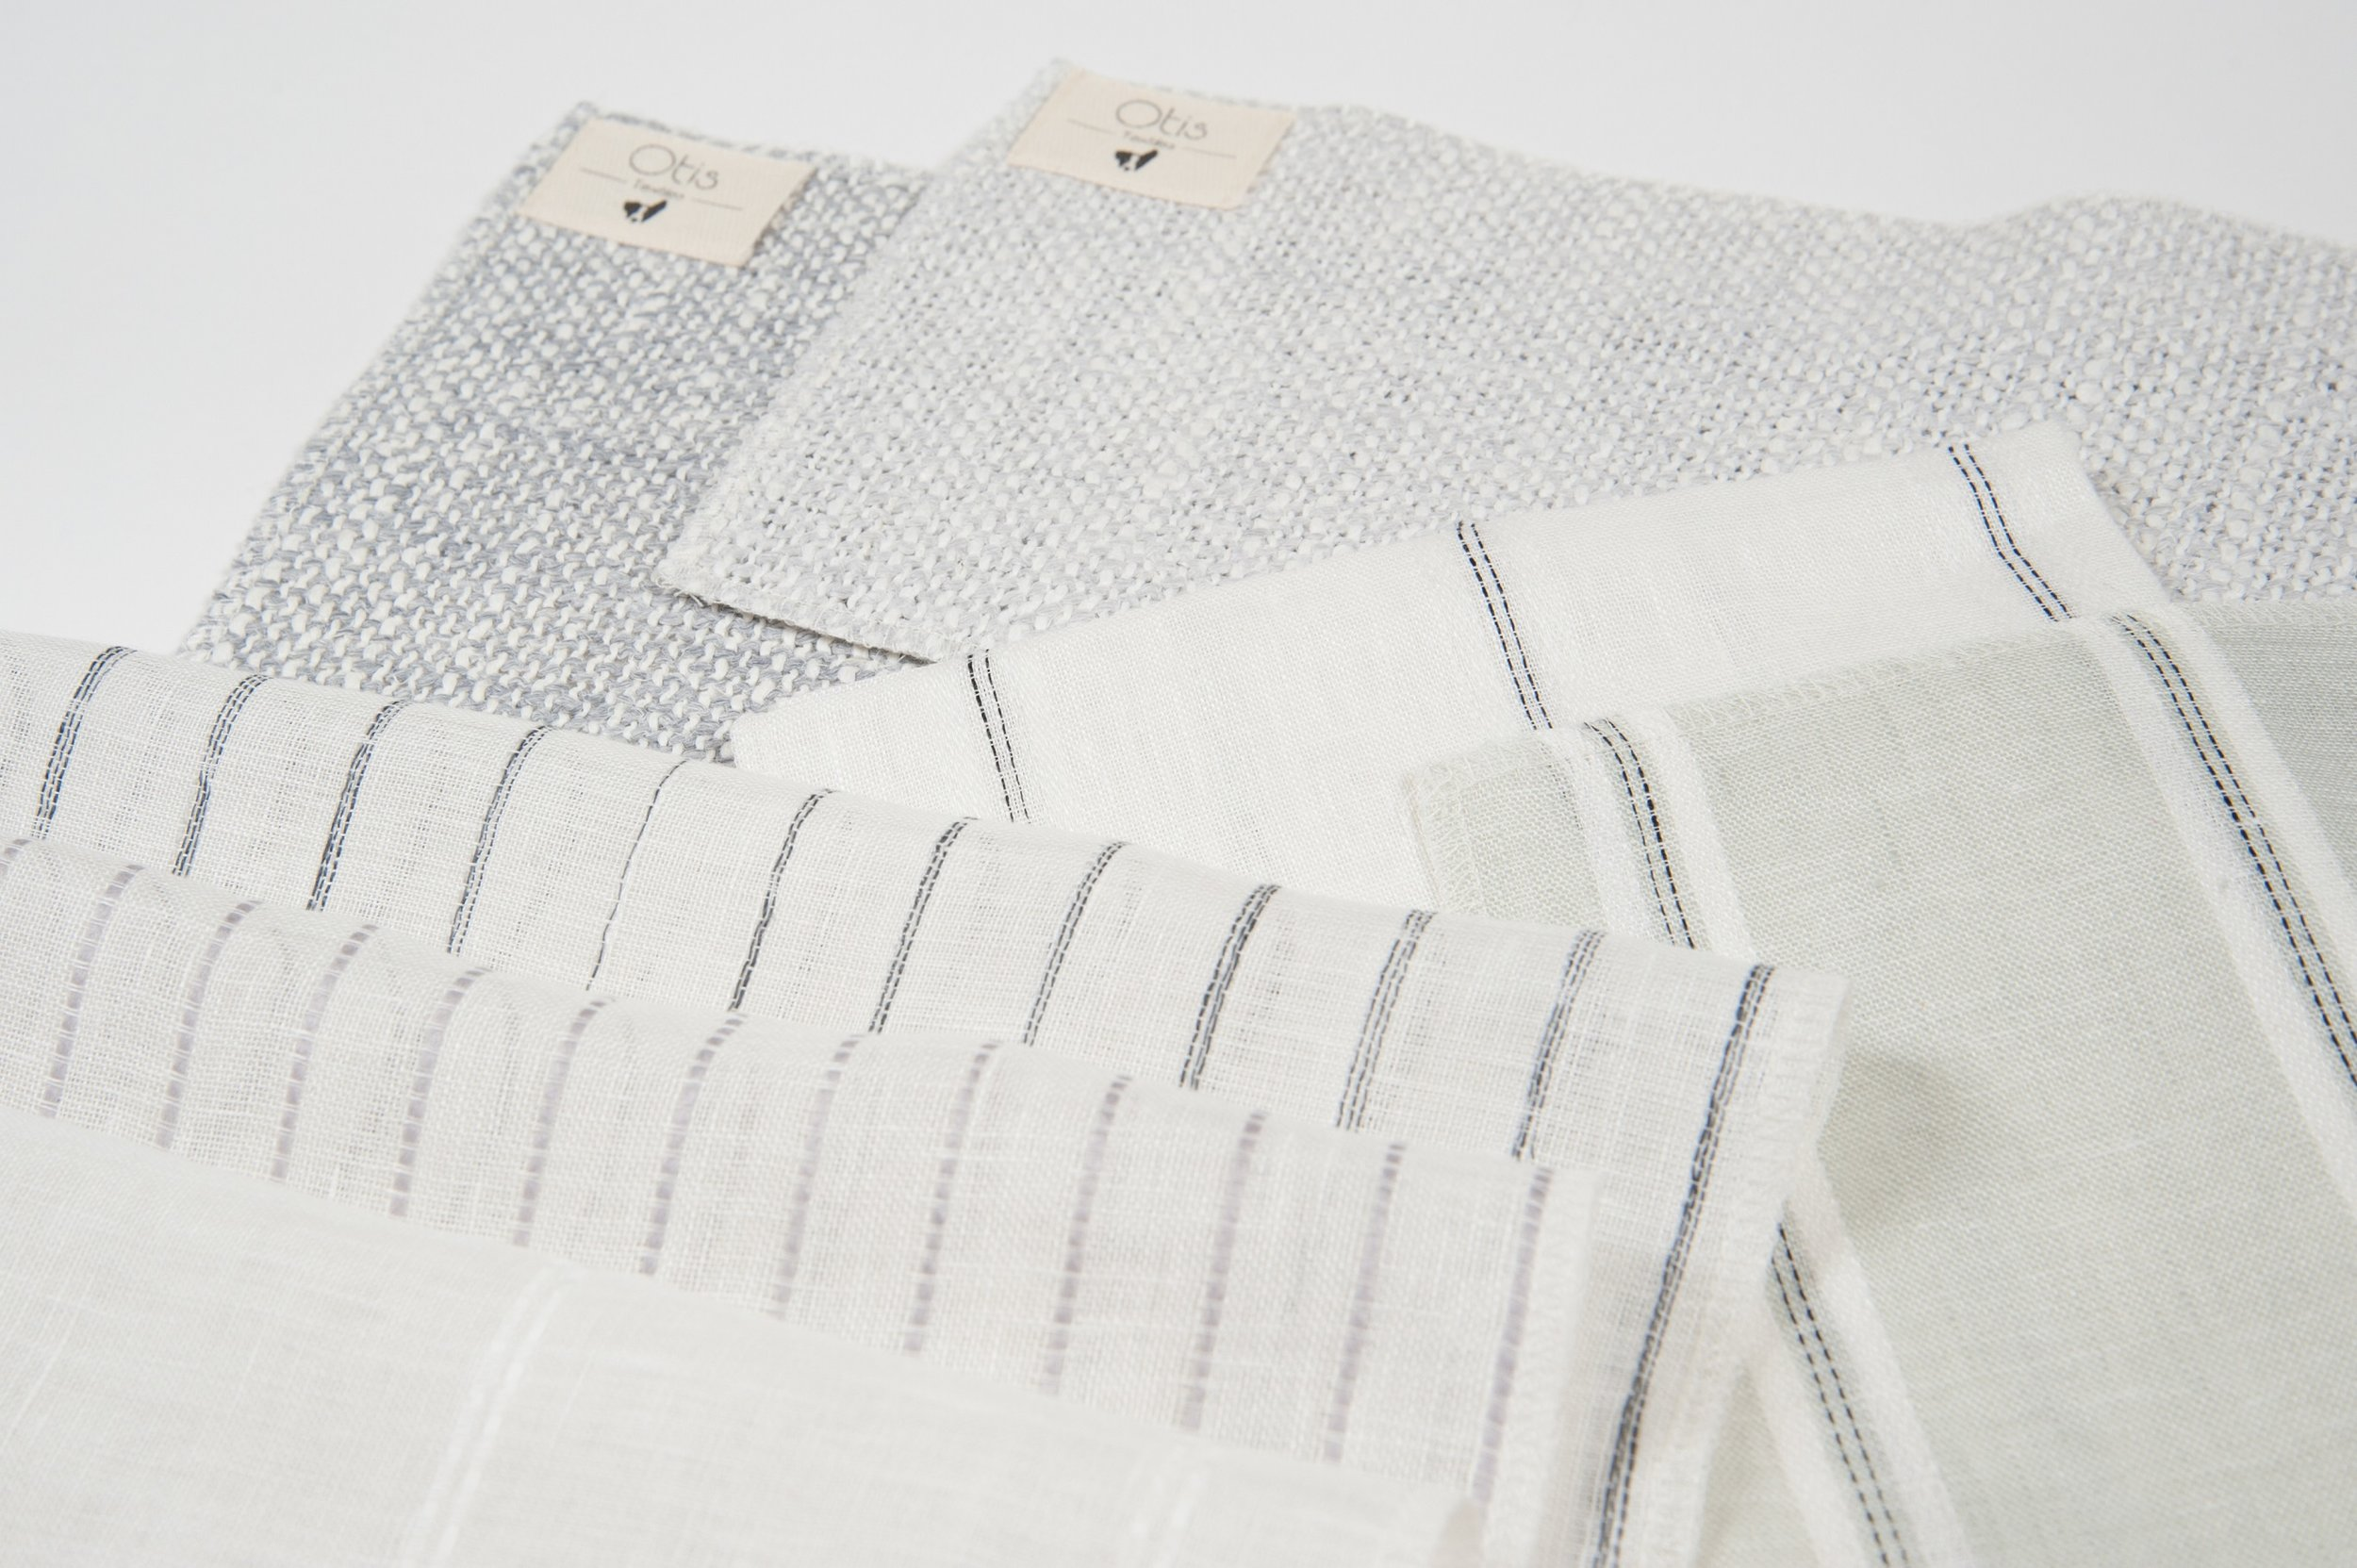 Fabric Samples - Request to open a trade account and receive samples of our first and second collection.